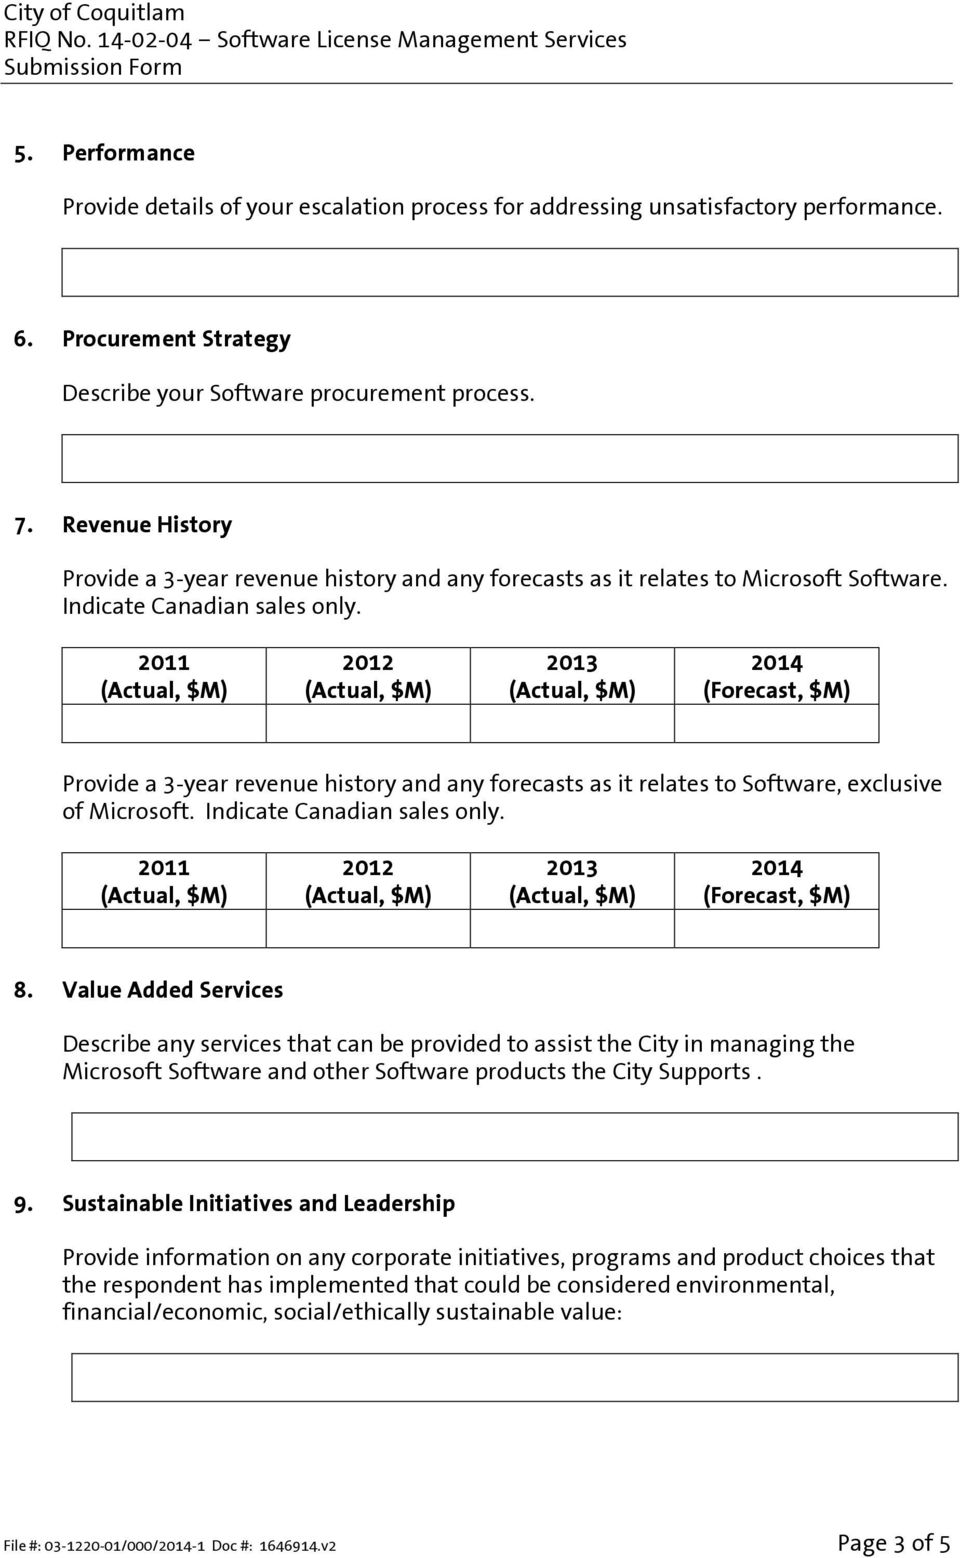 2011 (Actual, $M) 2012 (Actual, $M) 2013 (Actual, $M) 2014 (Forecast, $M) Provide a 3-year revenue history and any forecasts as it relates to Software, exclusive of Microsoft.